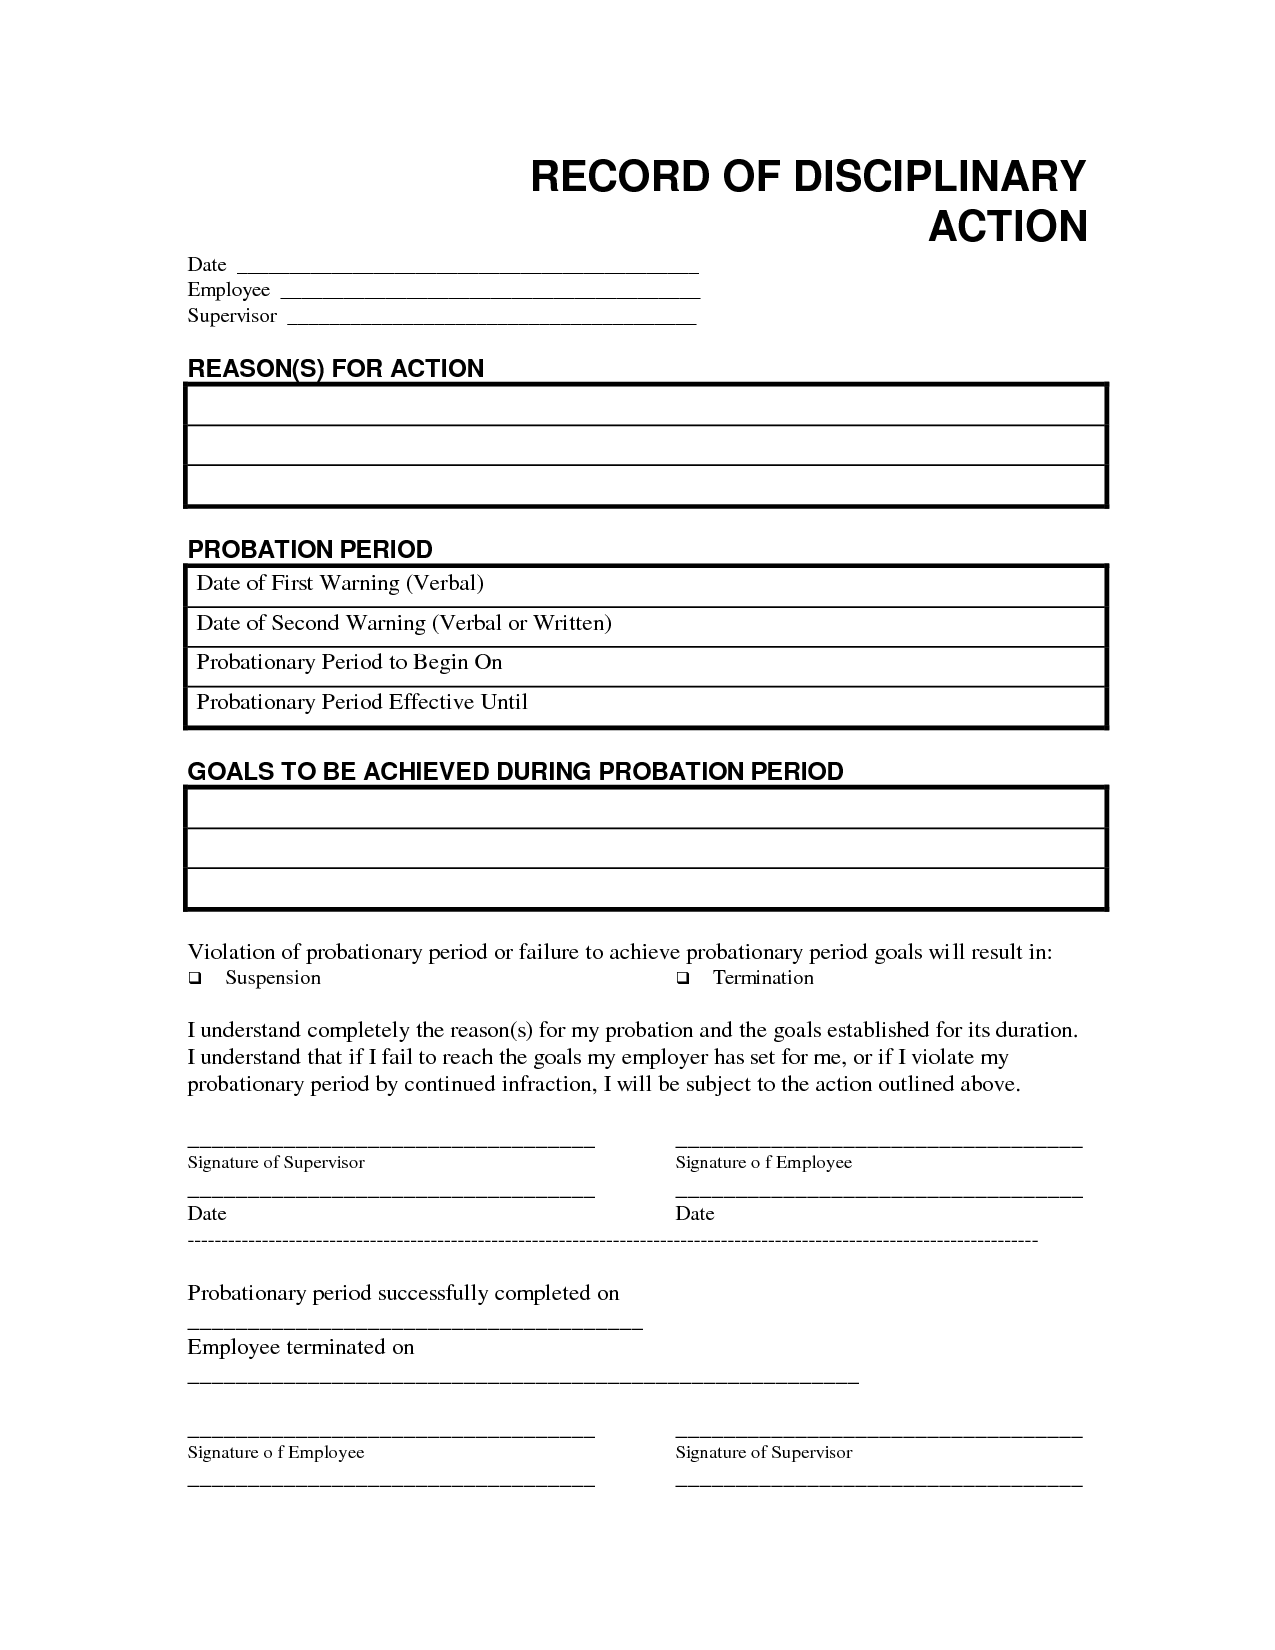 record disciplinary action free office form template by bar